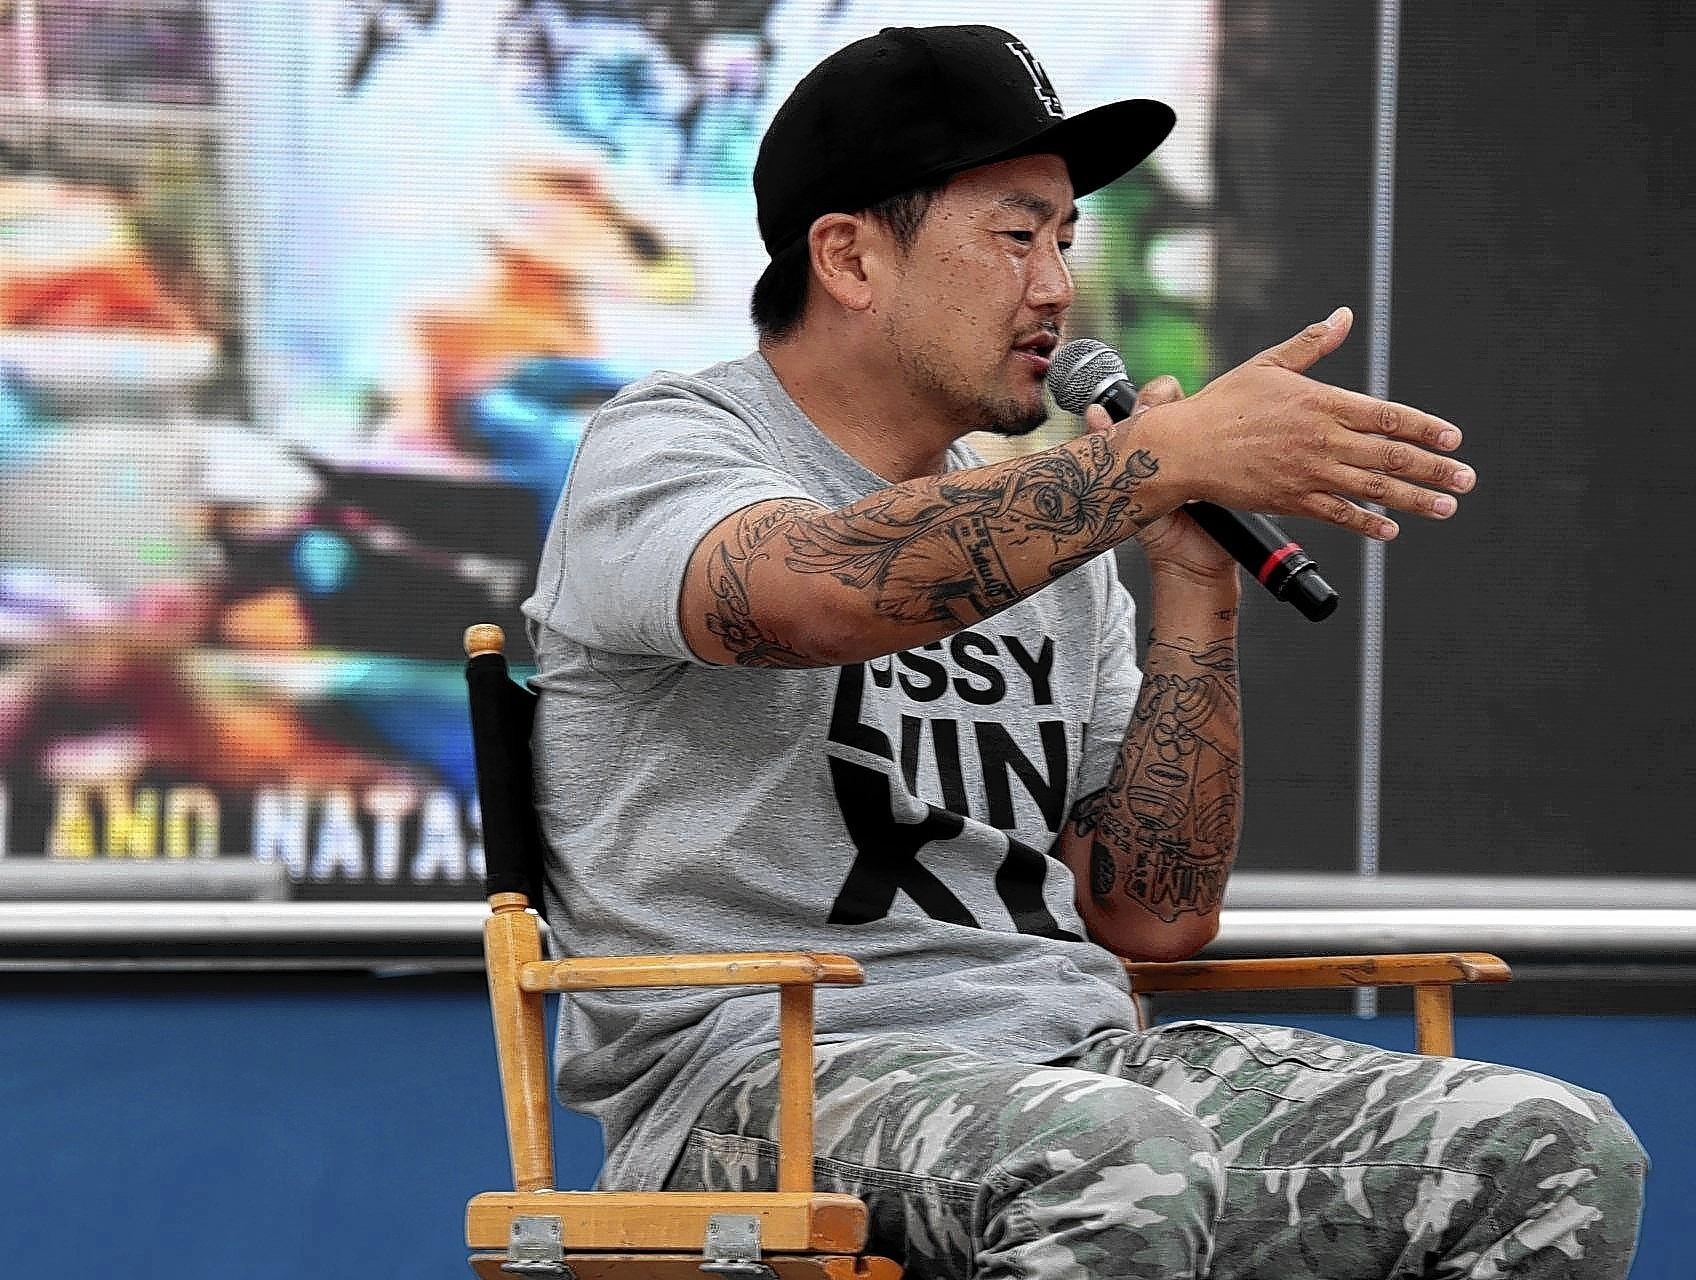 Roy Choi, of Kogi truck fame, talks to the crowd at the L.A. Times Festival of Books. Choi has always insisted he is a cook for the people and that his trucks offer up his ode to Los Angeles.